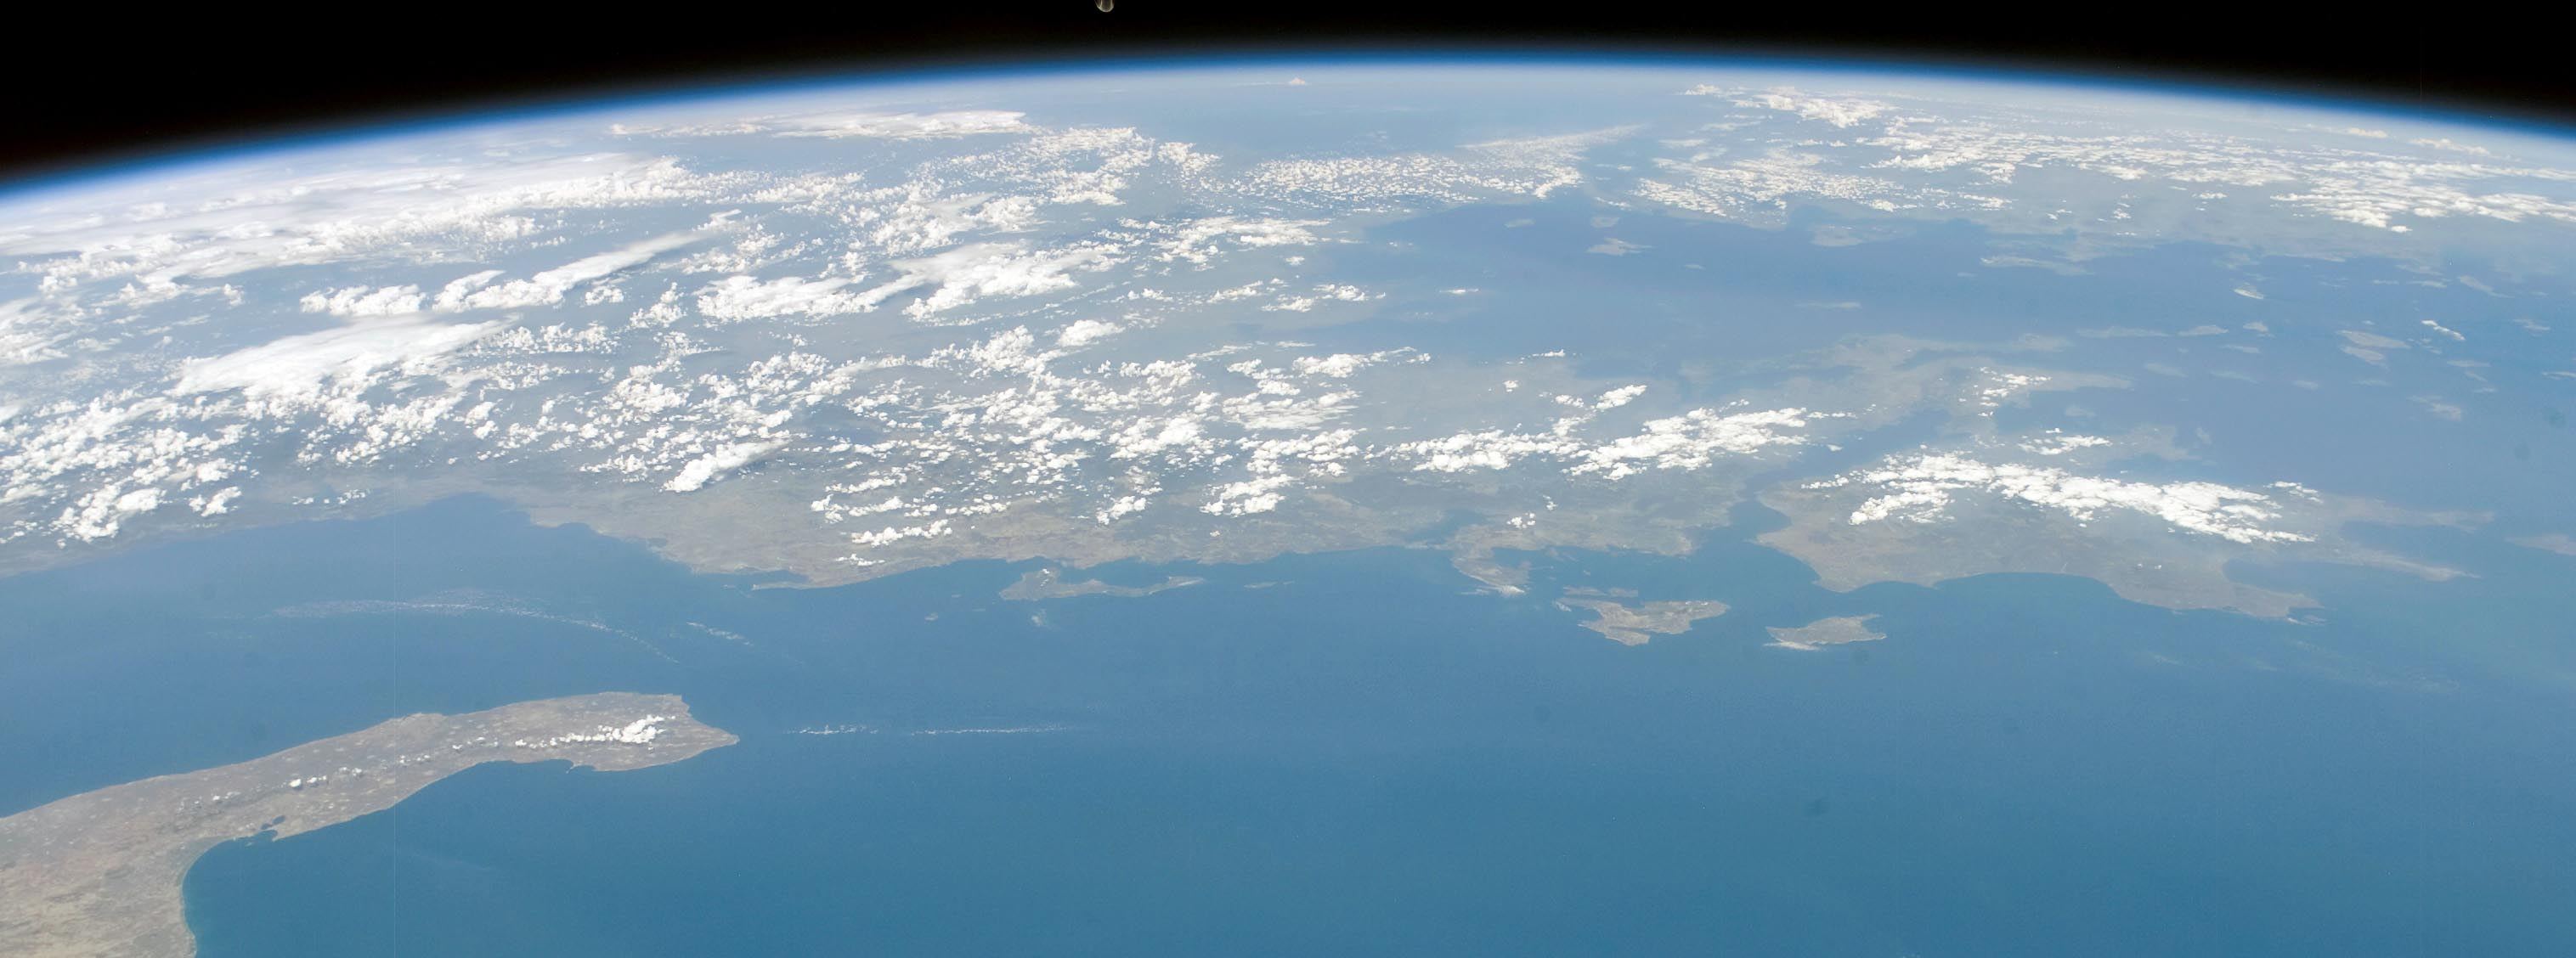 Earth-horizon-NASA.jpg